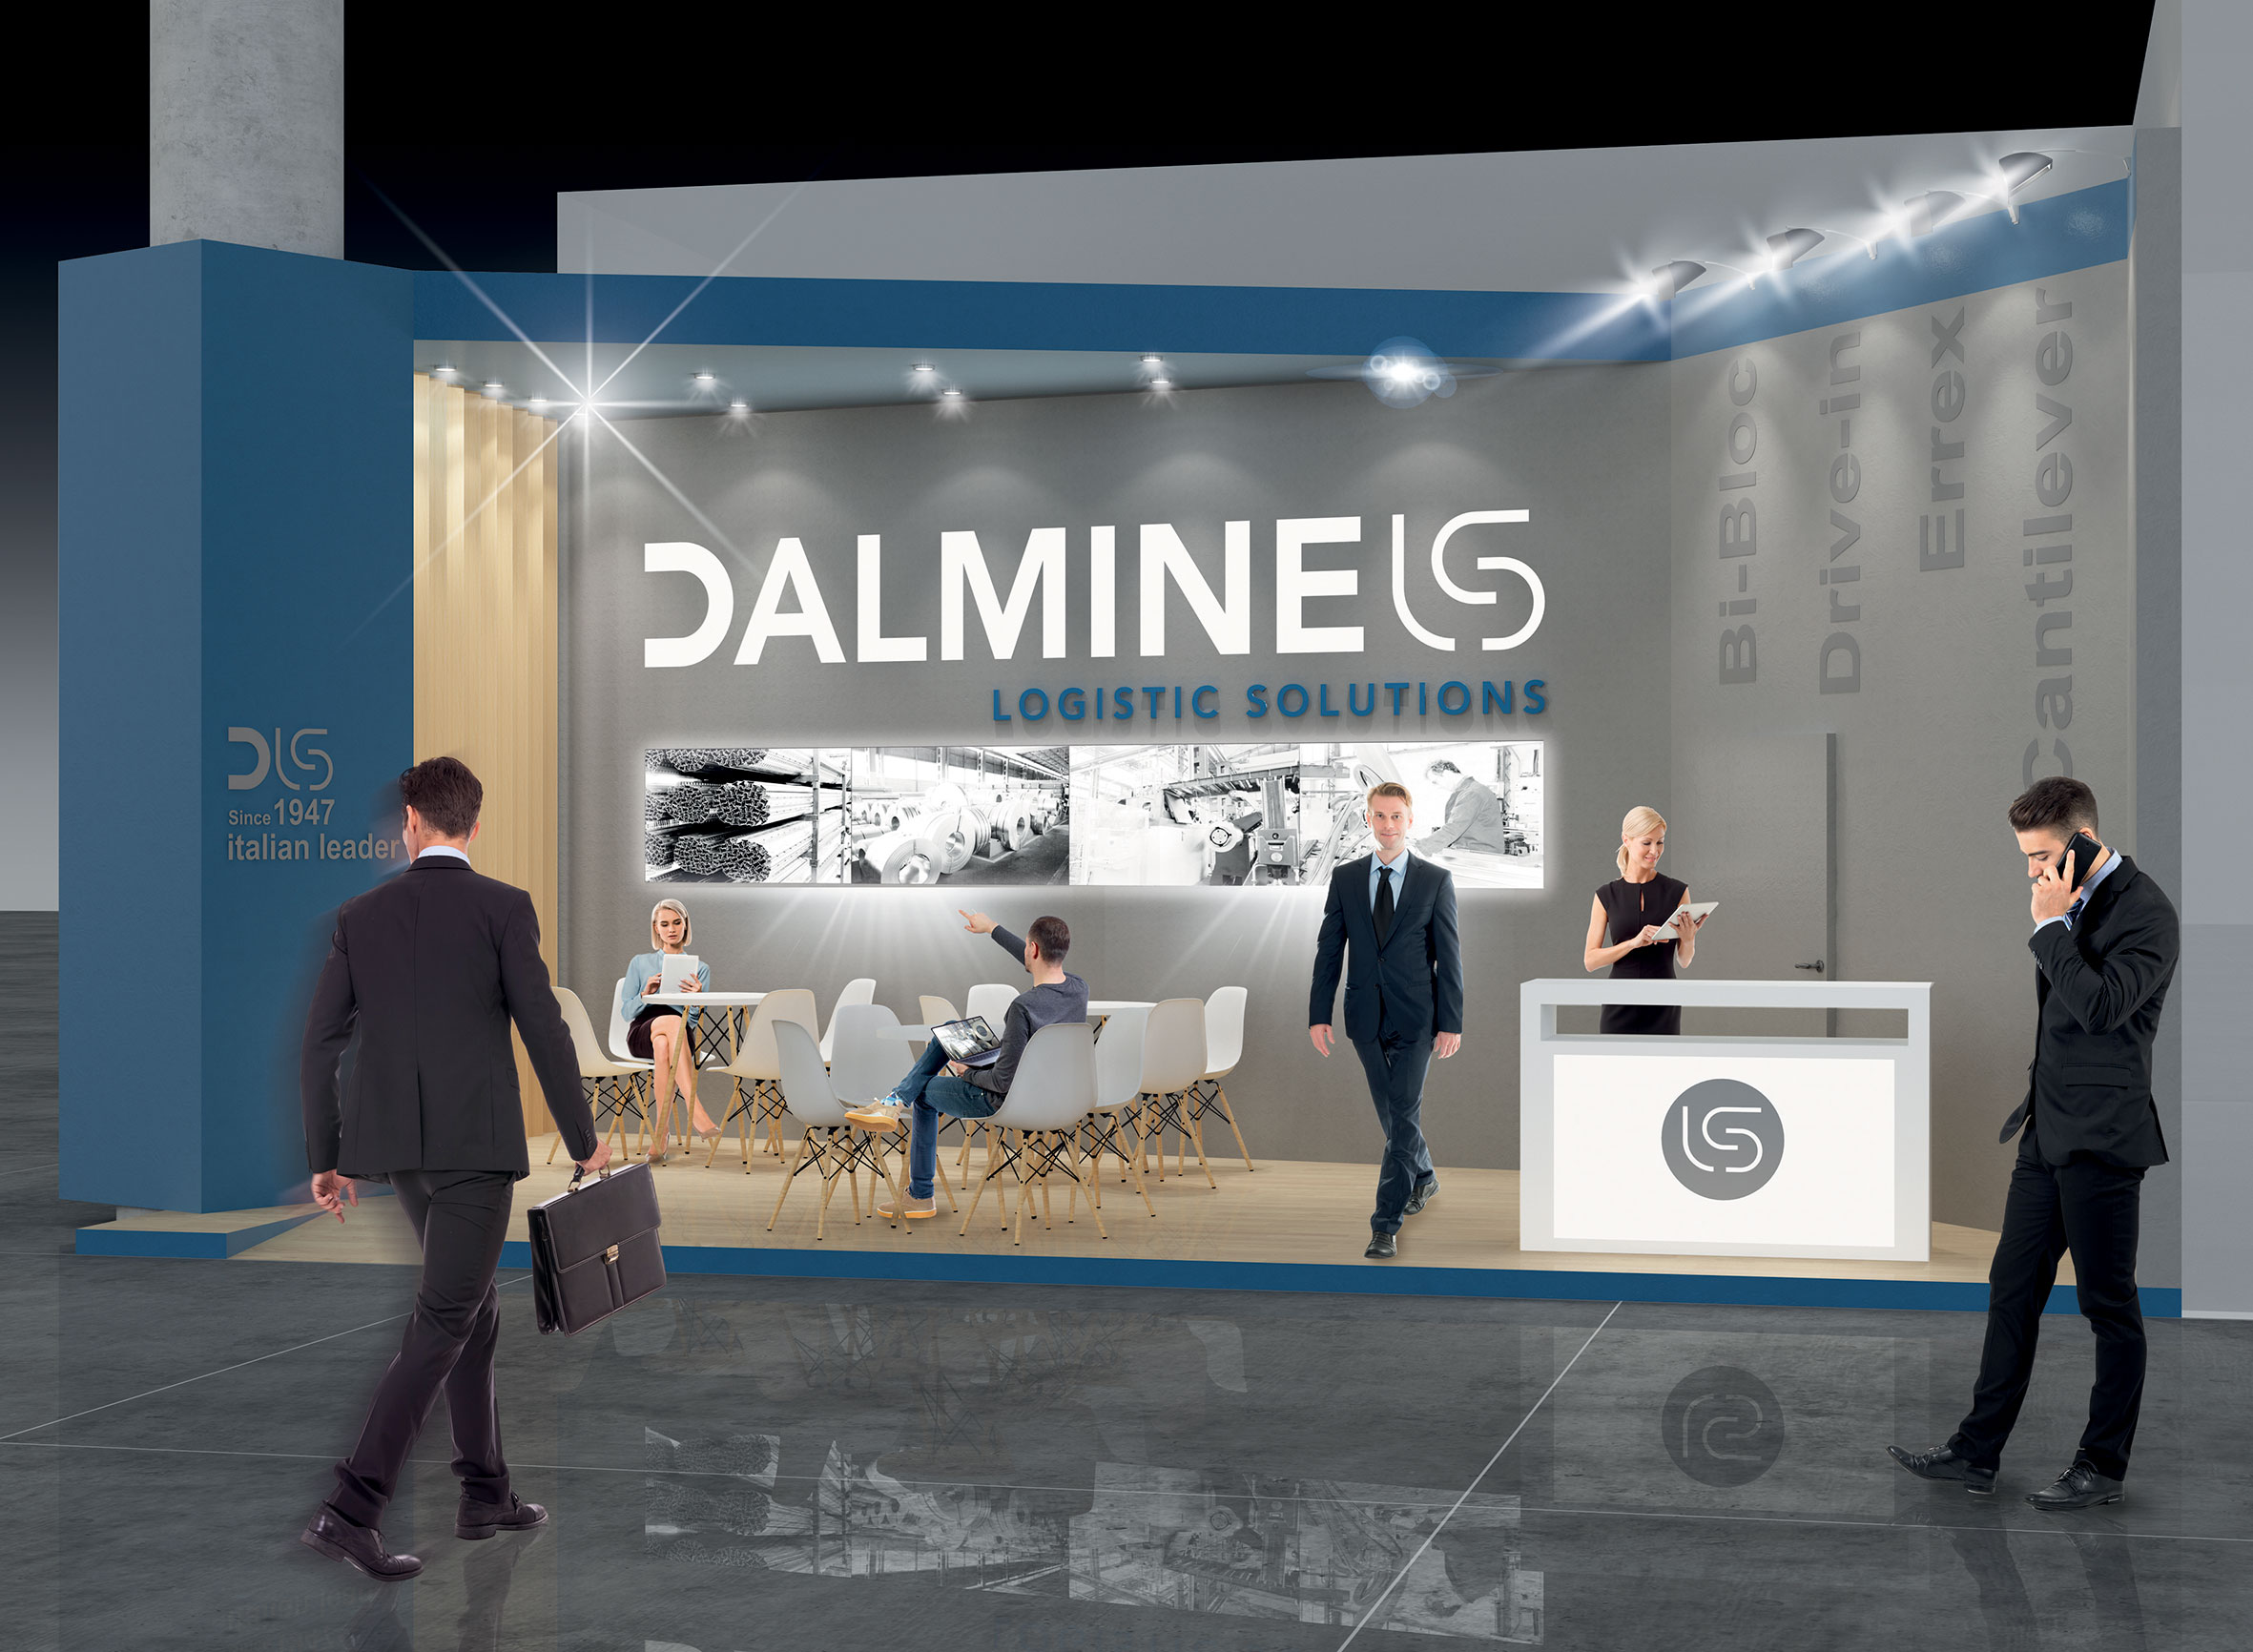 SC-Studio-Chiesa-Communication_Logistica-DLS-Dalmine-Logistic-Solutions-exhibition